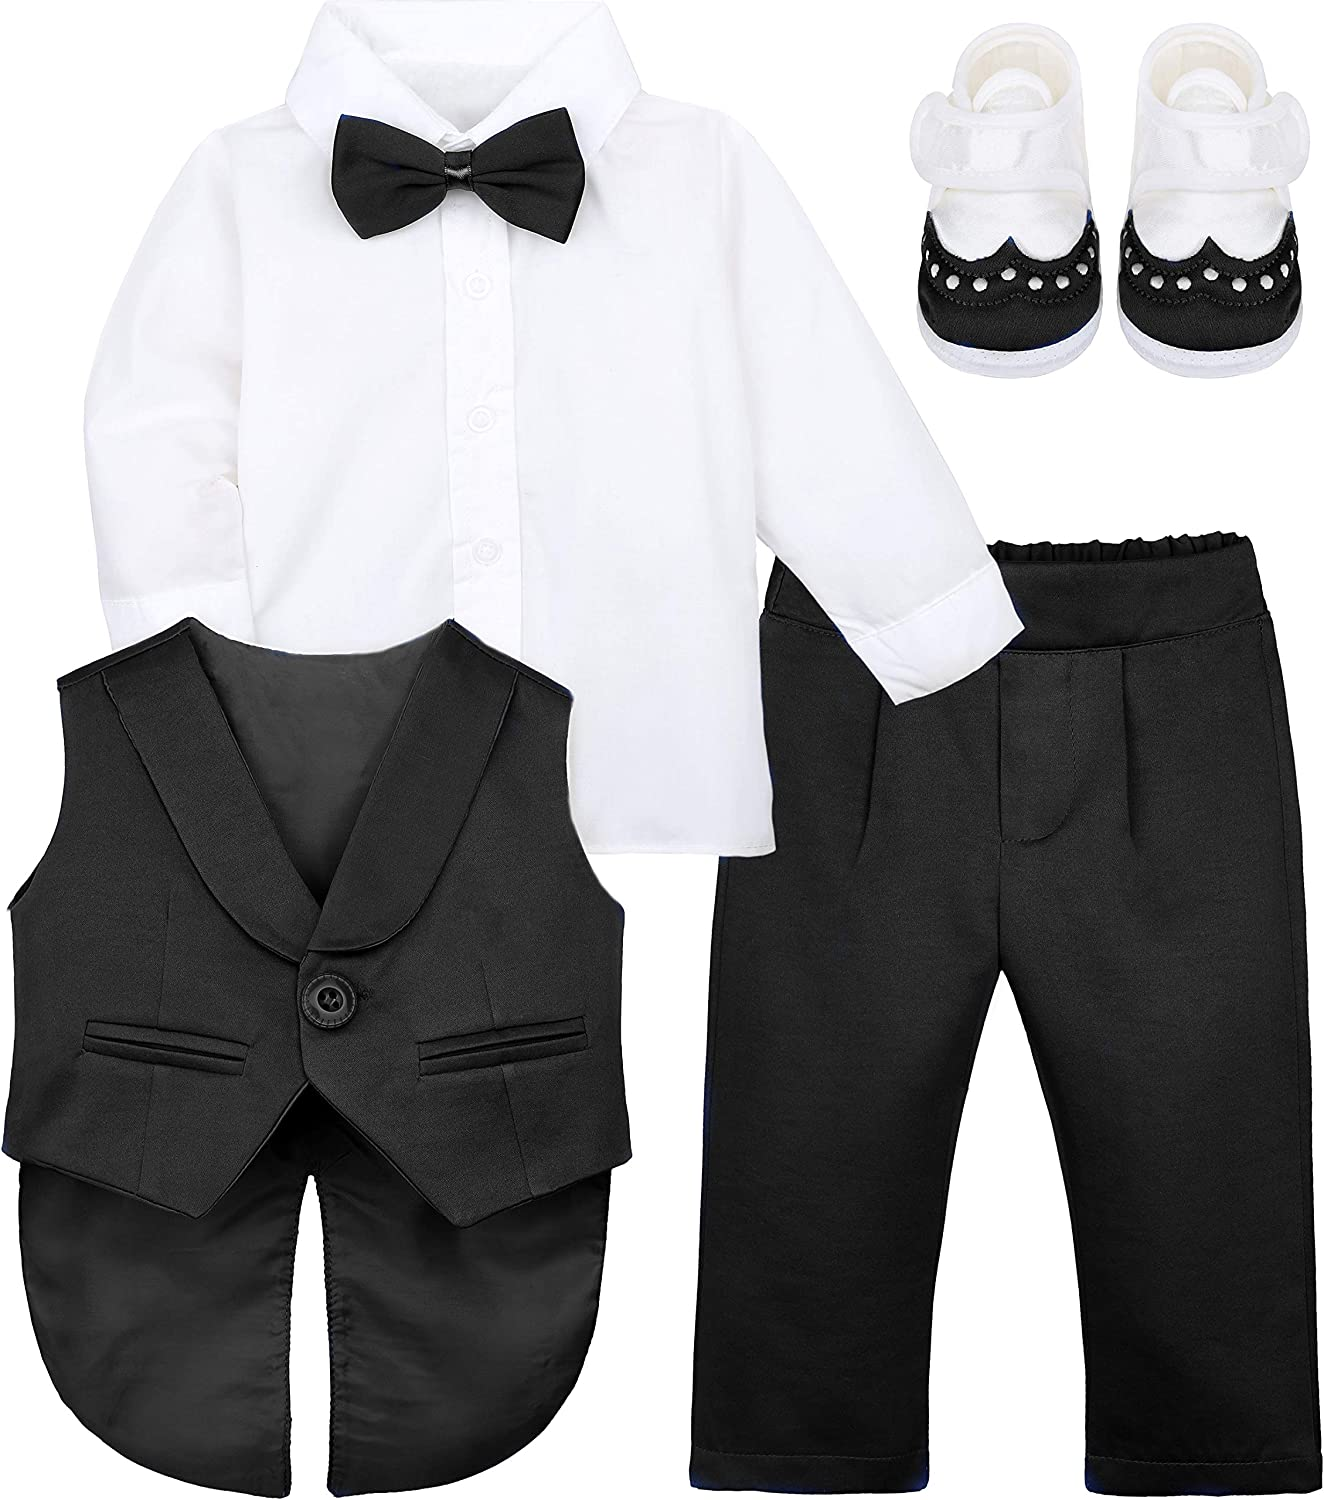 Lilax Baby Boy Gentleman Tuxedo Outfit Infant 4 Piece Set